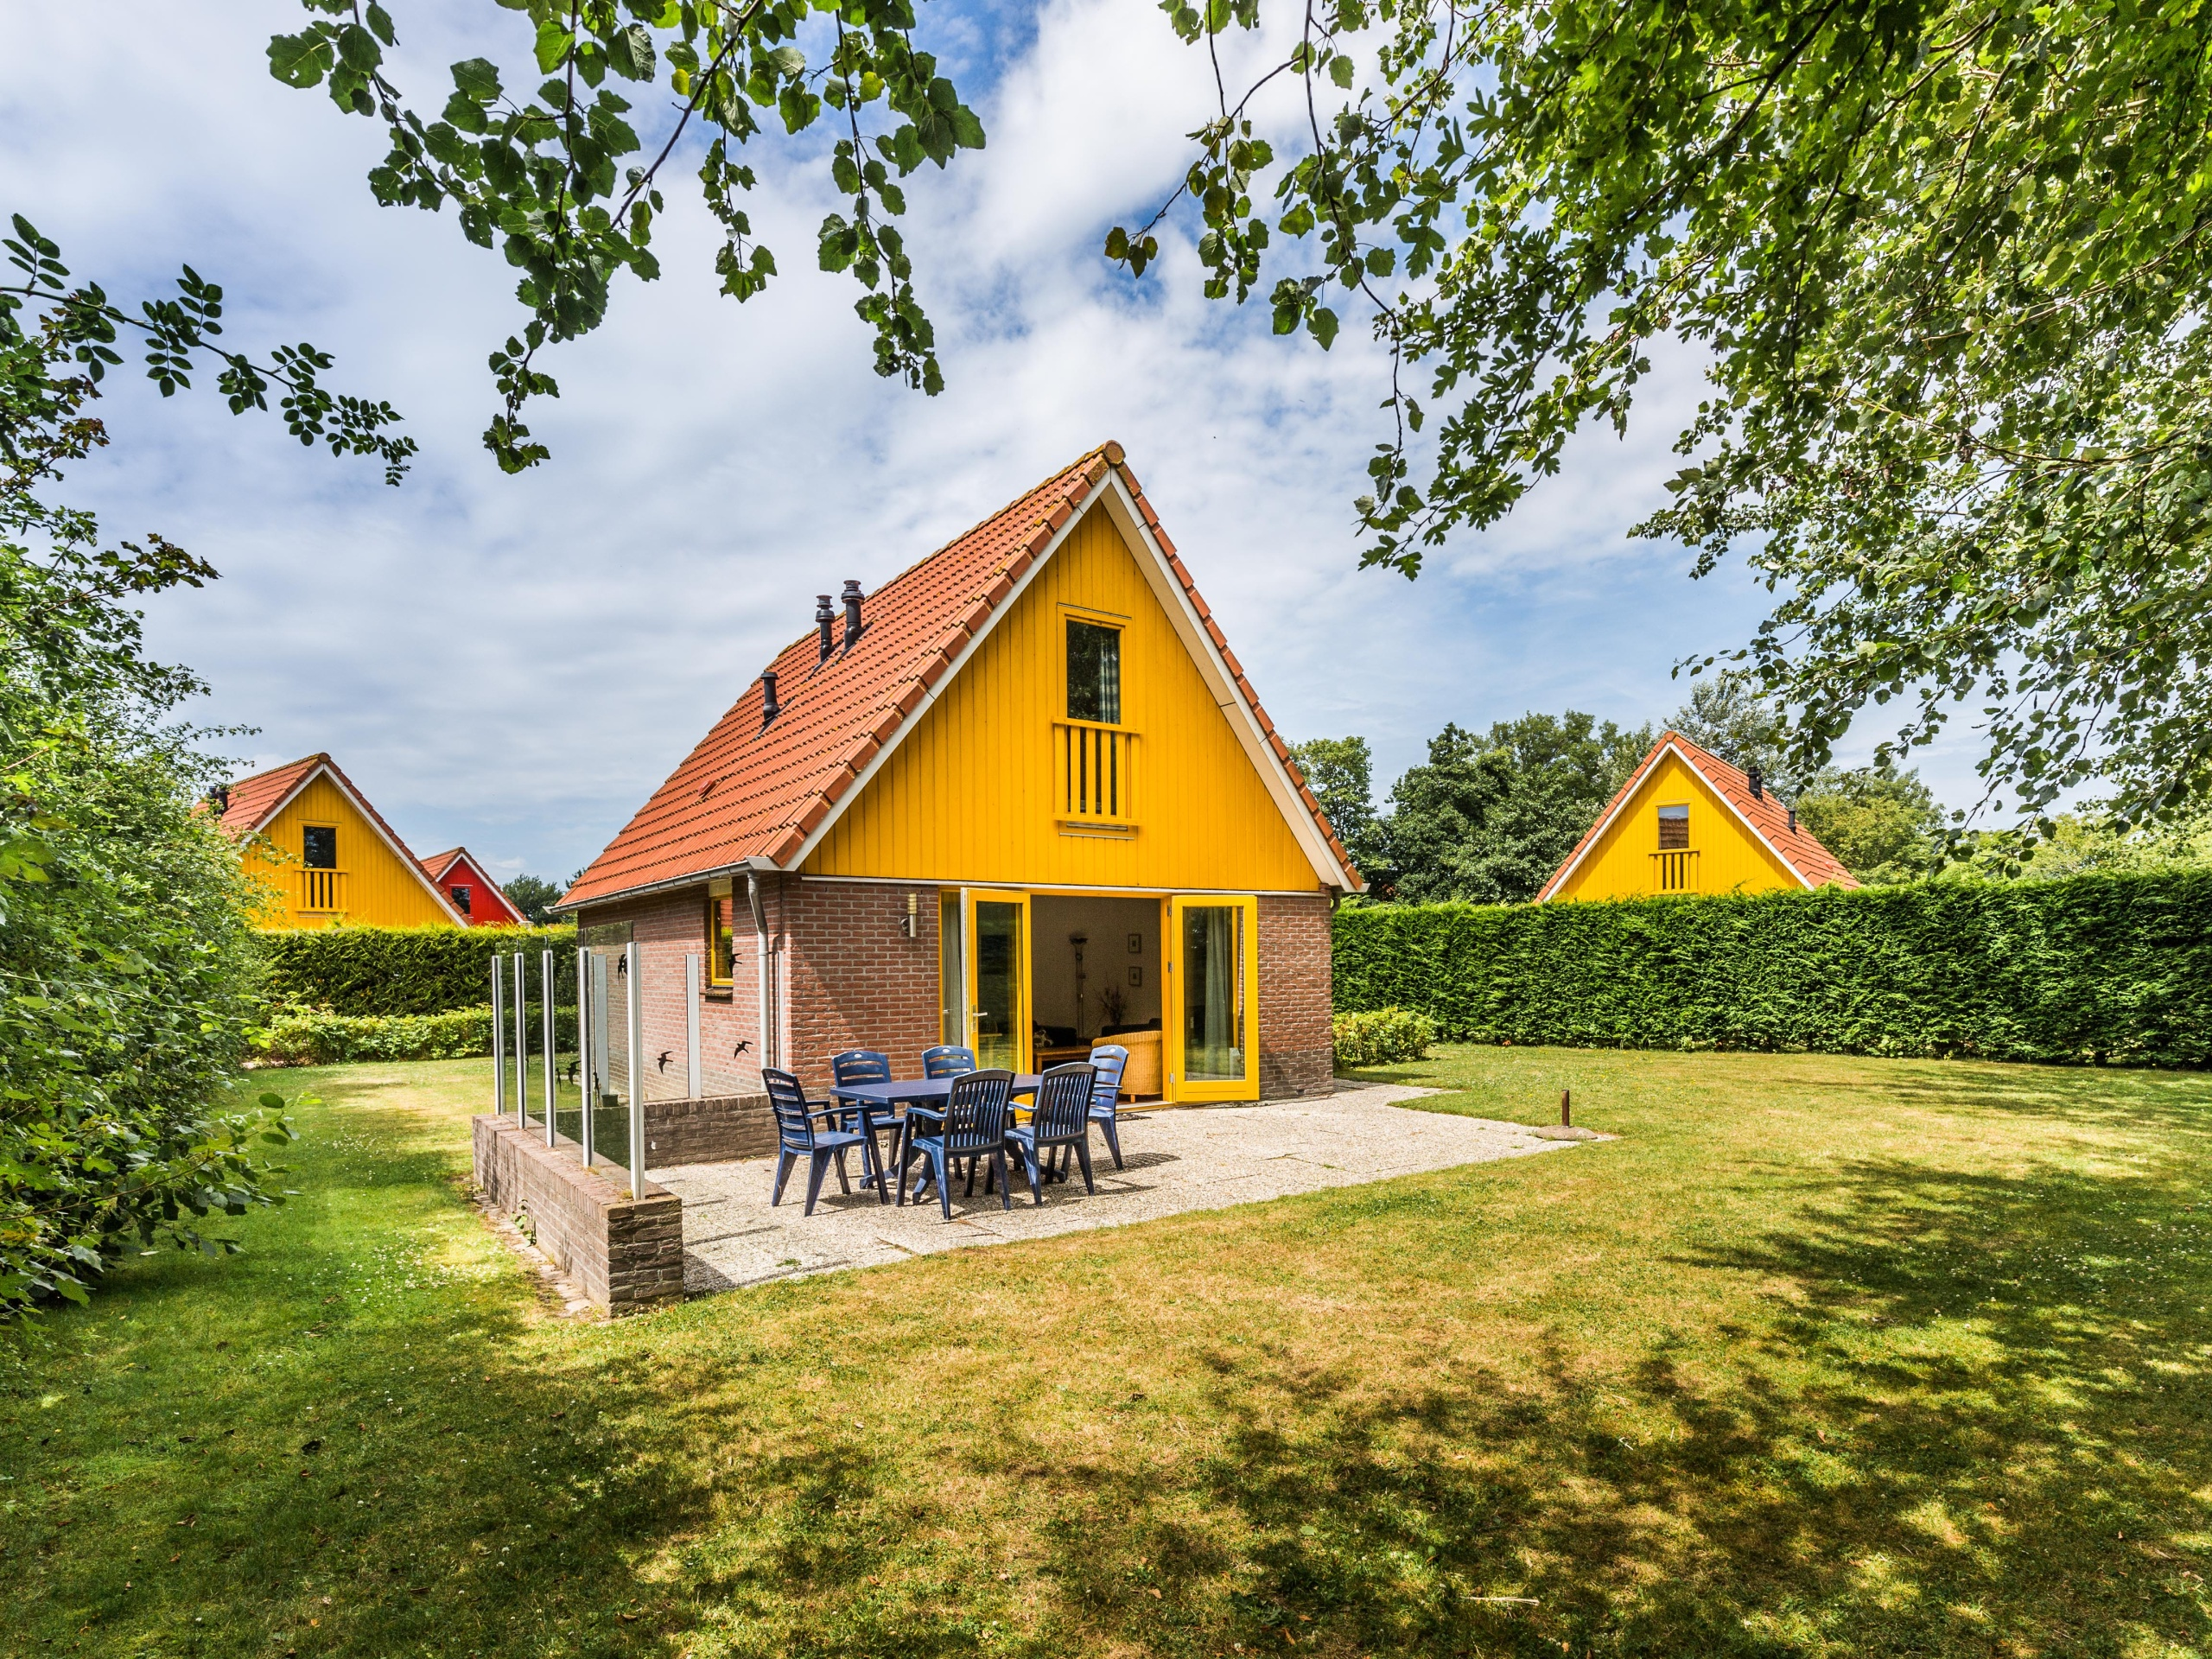 Detached holiday home by the Waddenzee and nature reserve Utopia